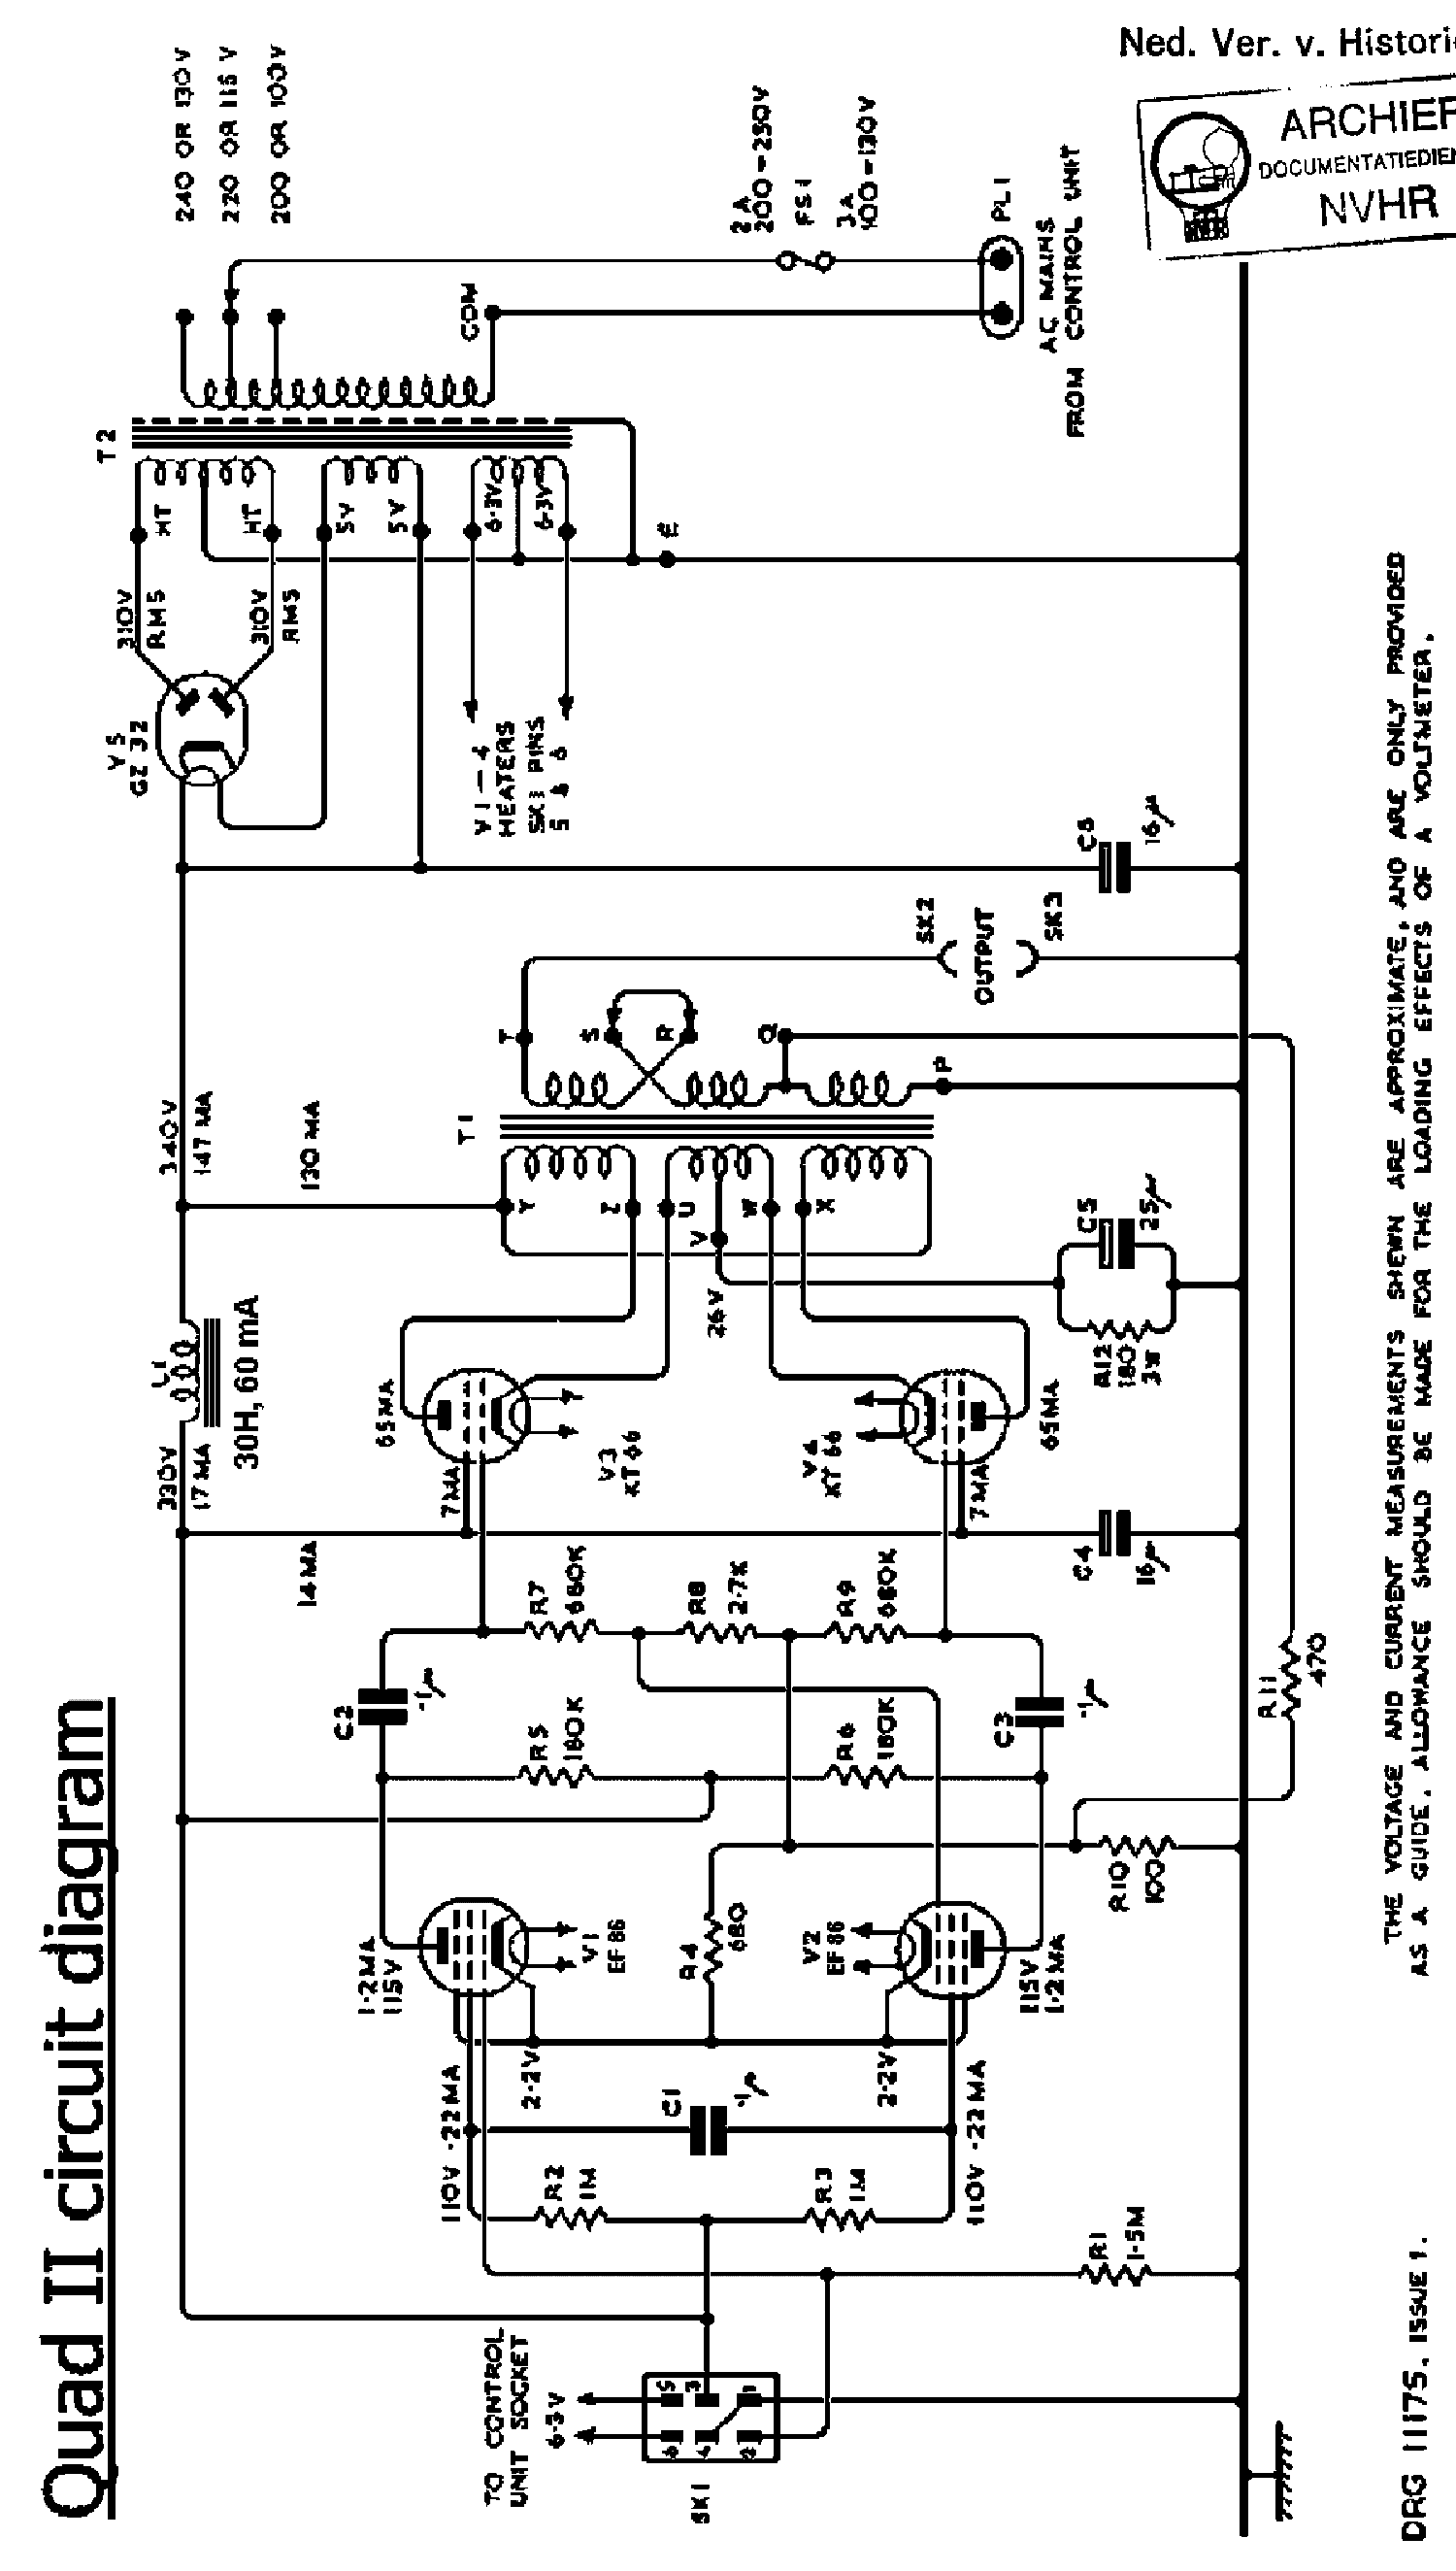 Quad 606 Power Amplifier Repair Manual